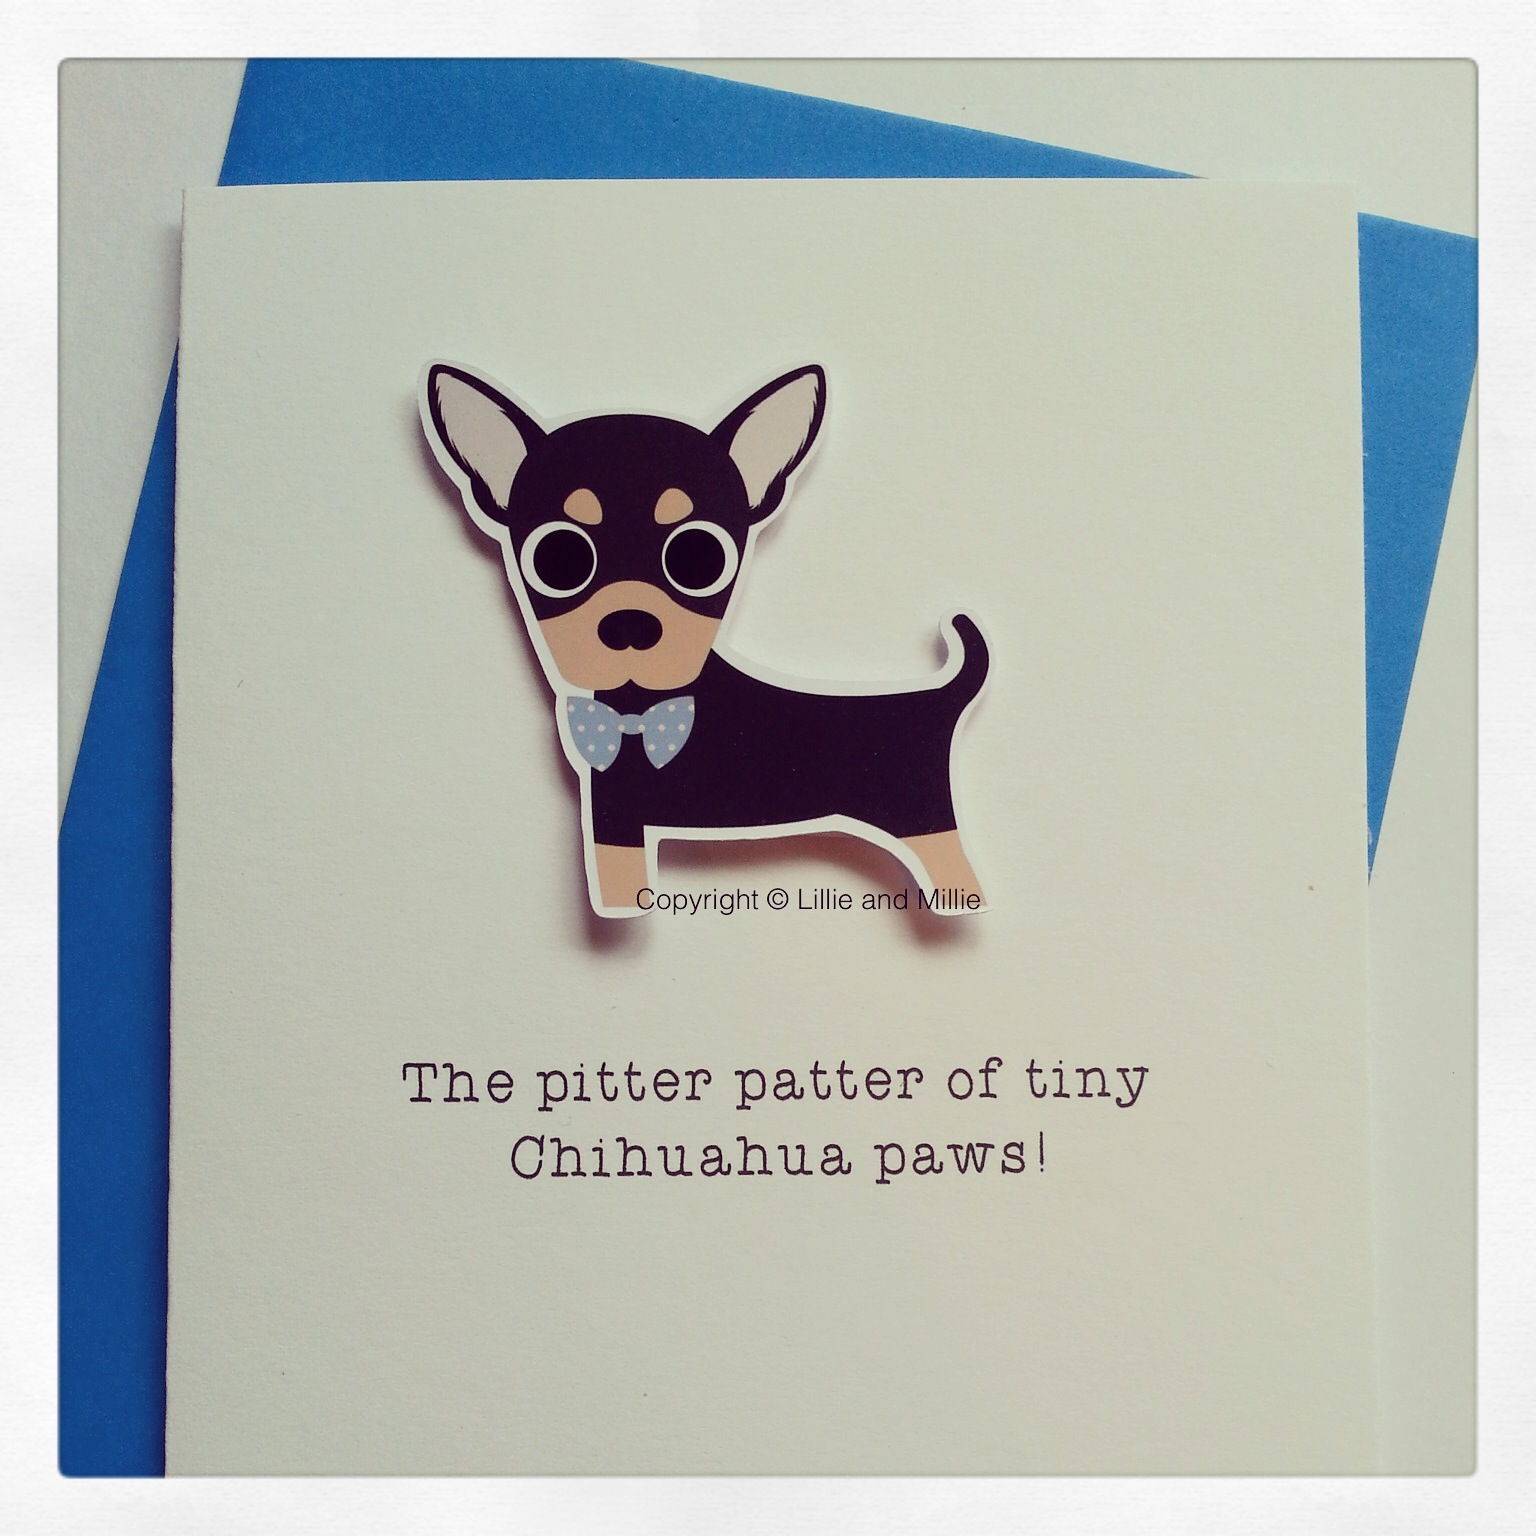 Cute and Cuddly Border Terrier Puppy Dog Greetings Card